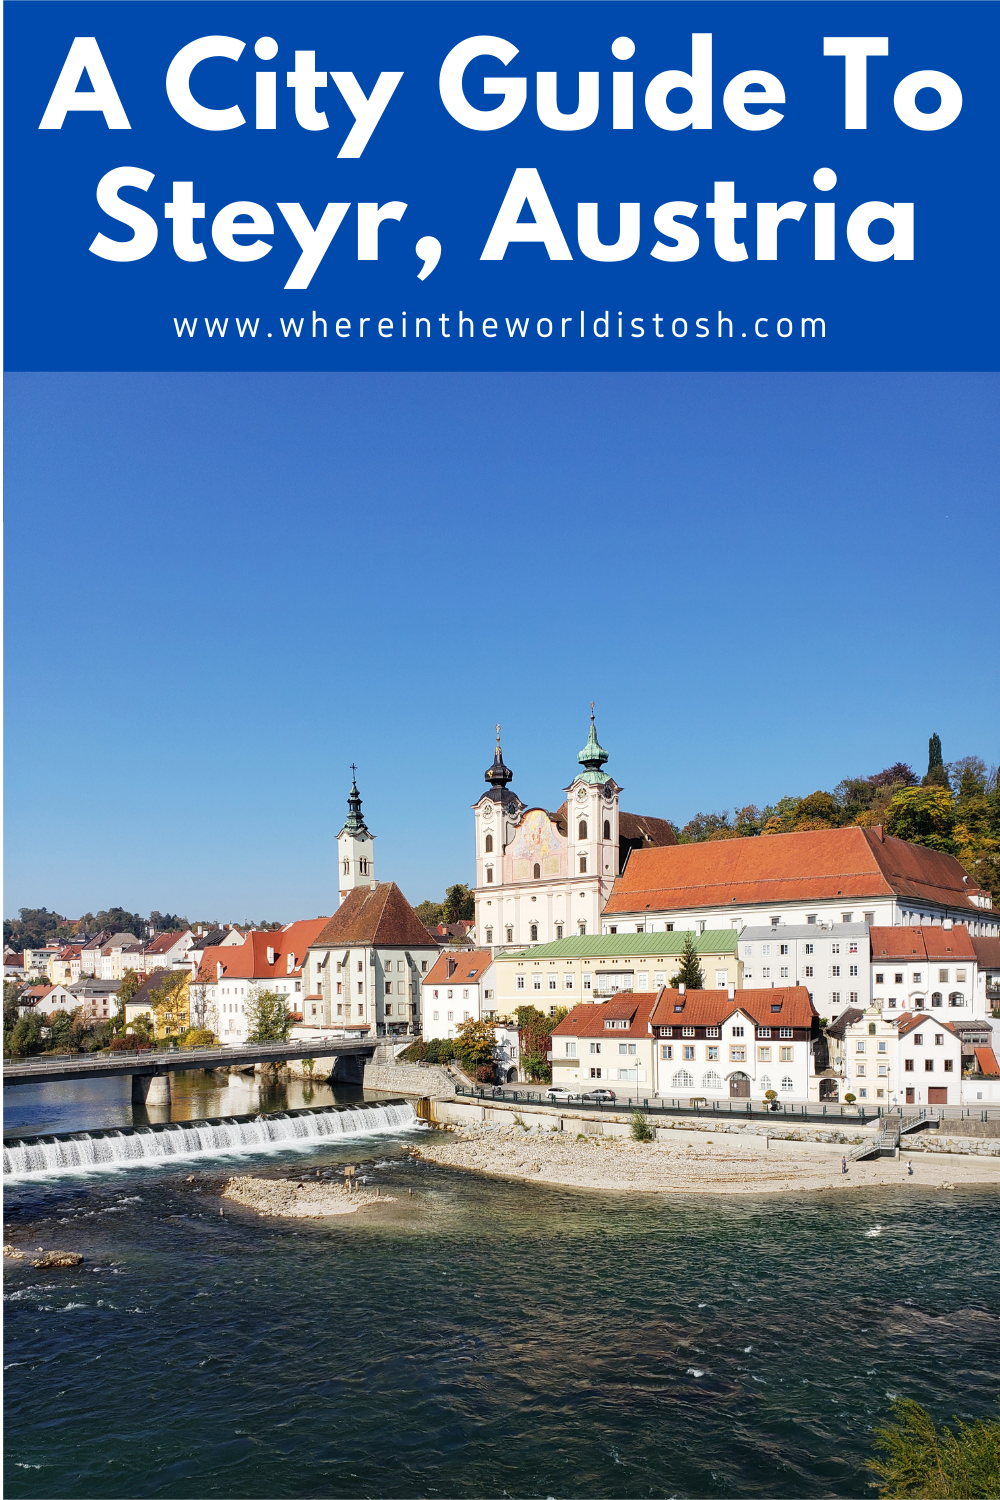 A City Guide To Steyr